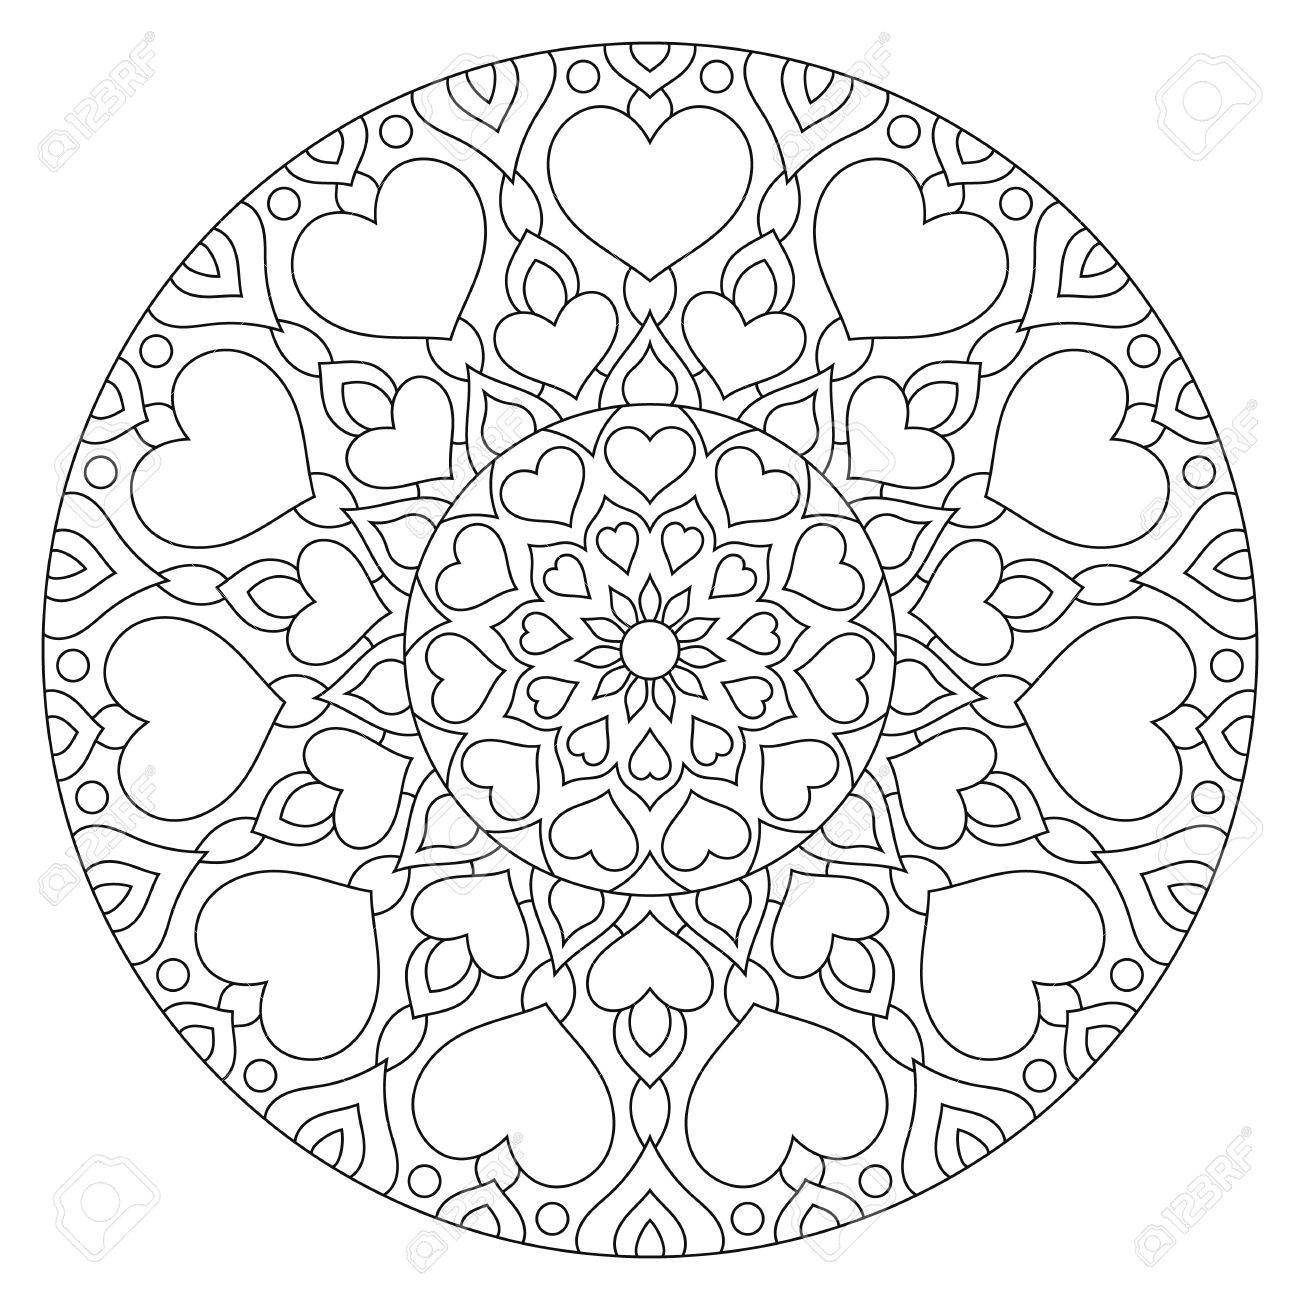 Flower Mandala With Hearts Coloring Page For Valentines Day Stock Photo